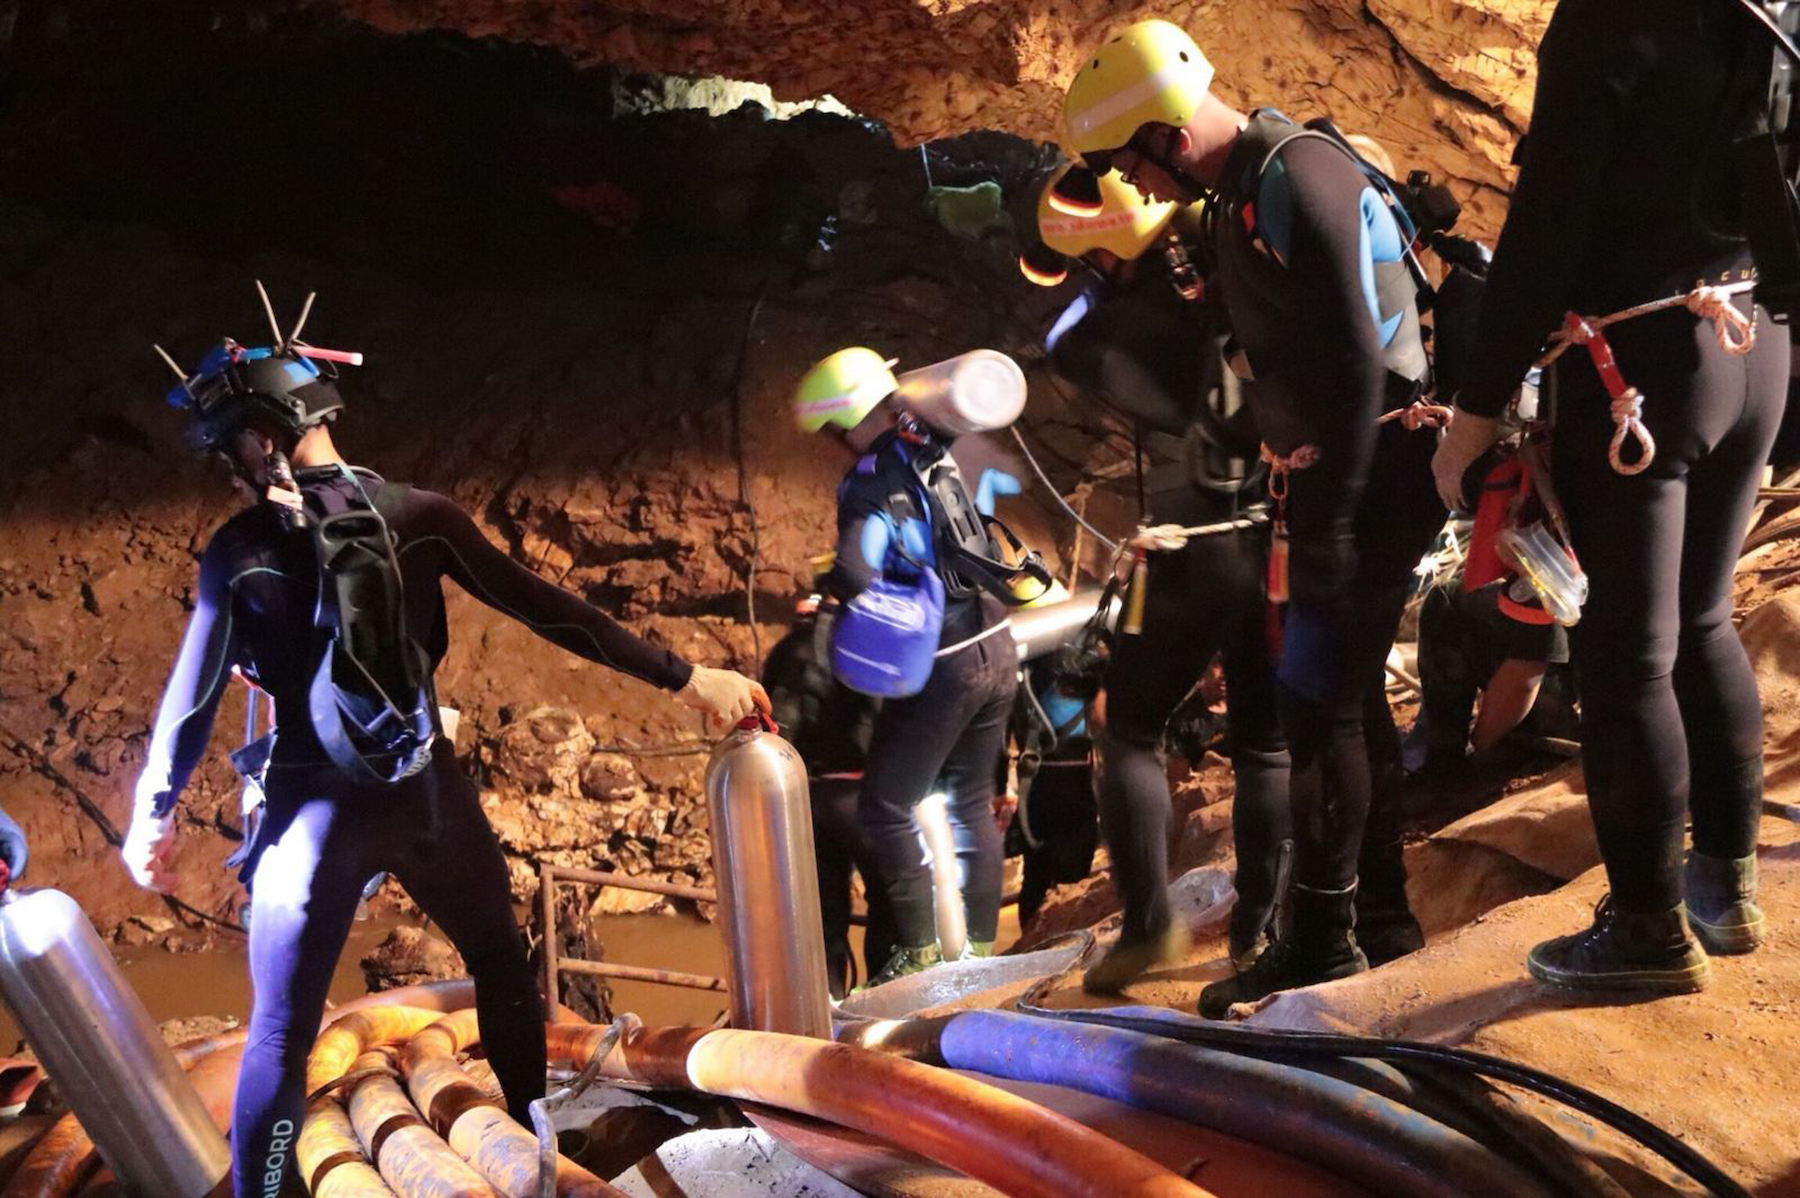 <div class='meta'><div class='origin-logo' data-origin='AP'></div><span class='caption-text' data-credit='Thai Navy via AP'>Thai rescue teams walk inside cave complex where 12 boys and their soccer coach went missing in Mae Sai, Chiang Rai province, northern Thailand.</span></div>